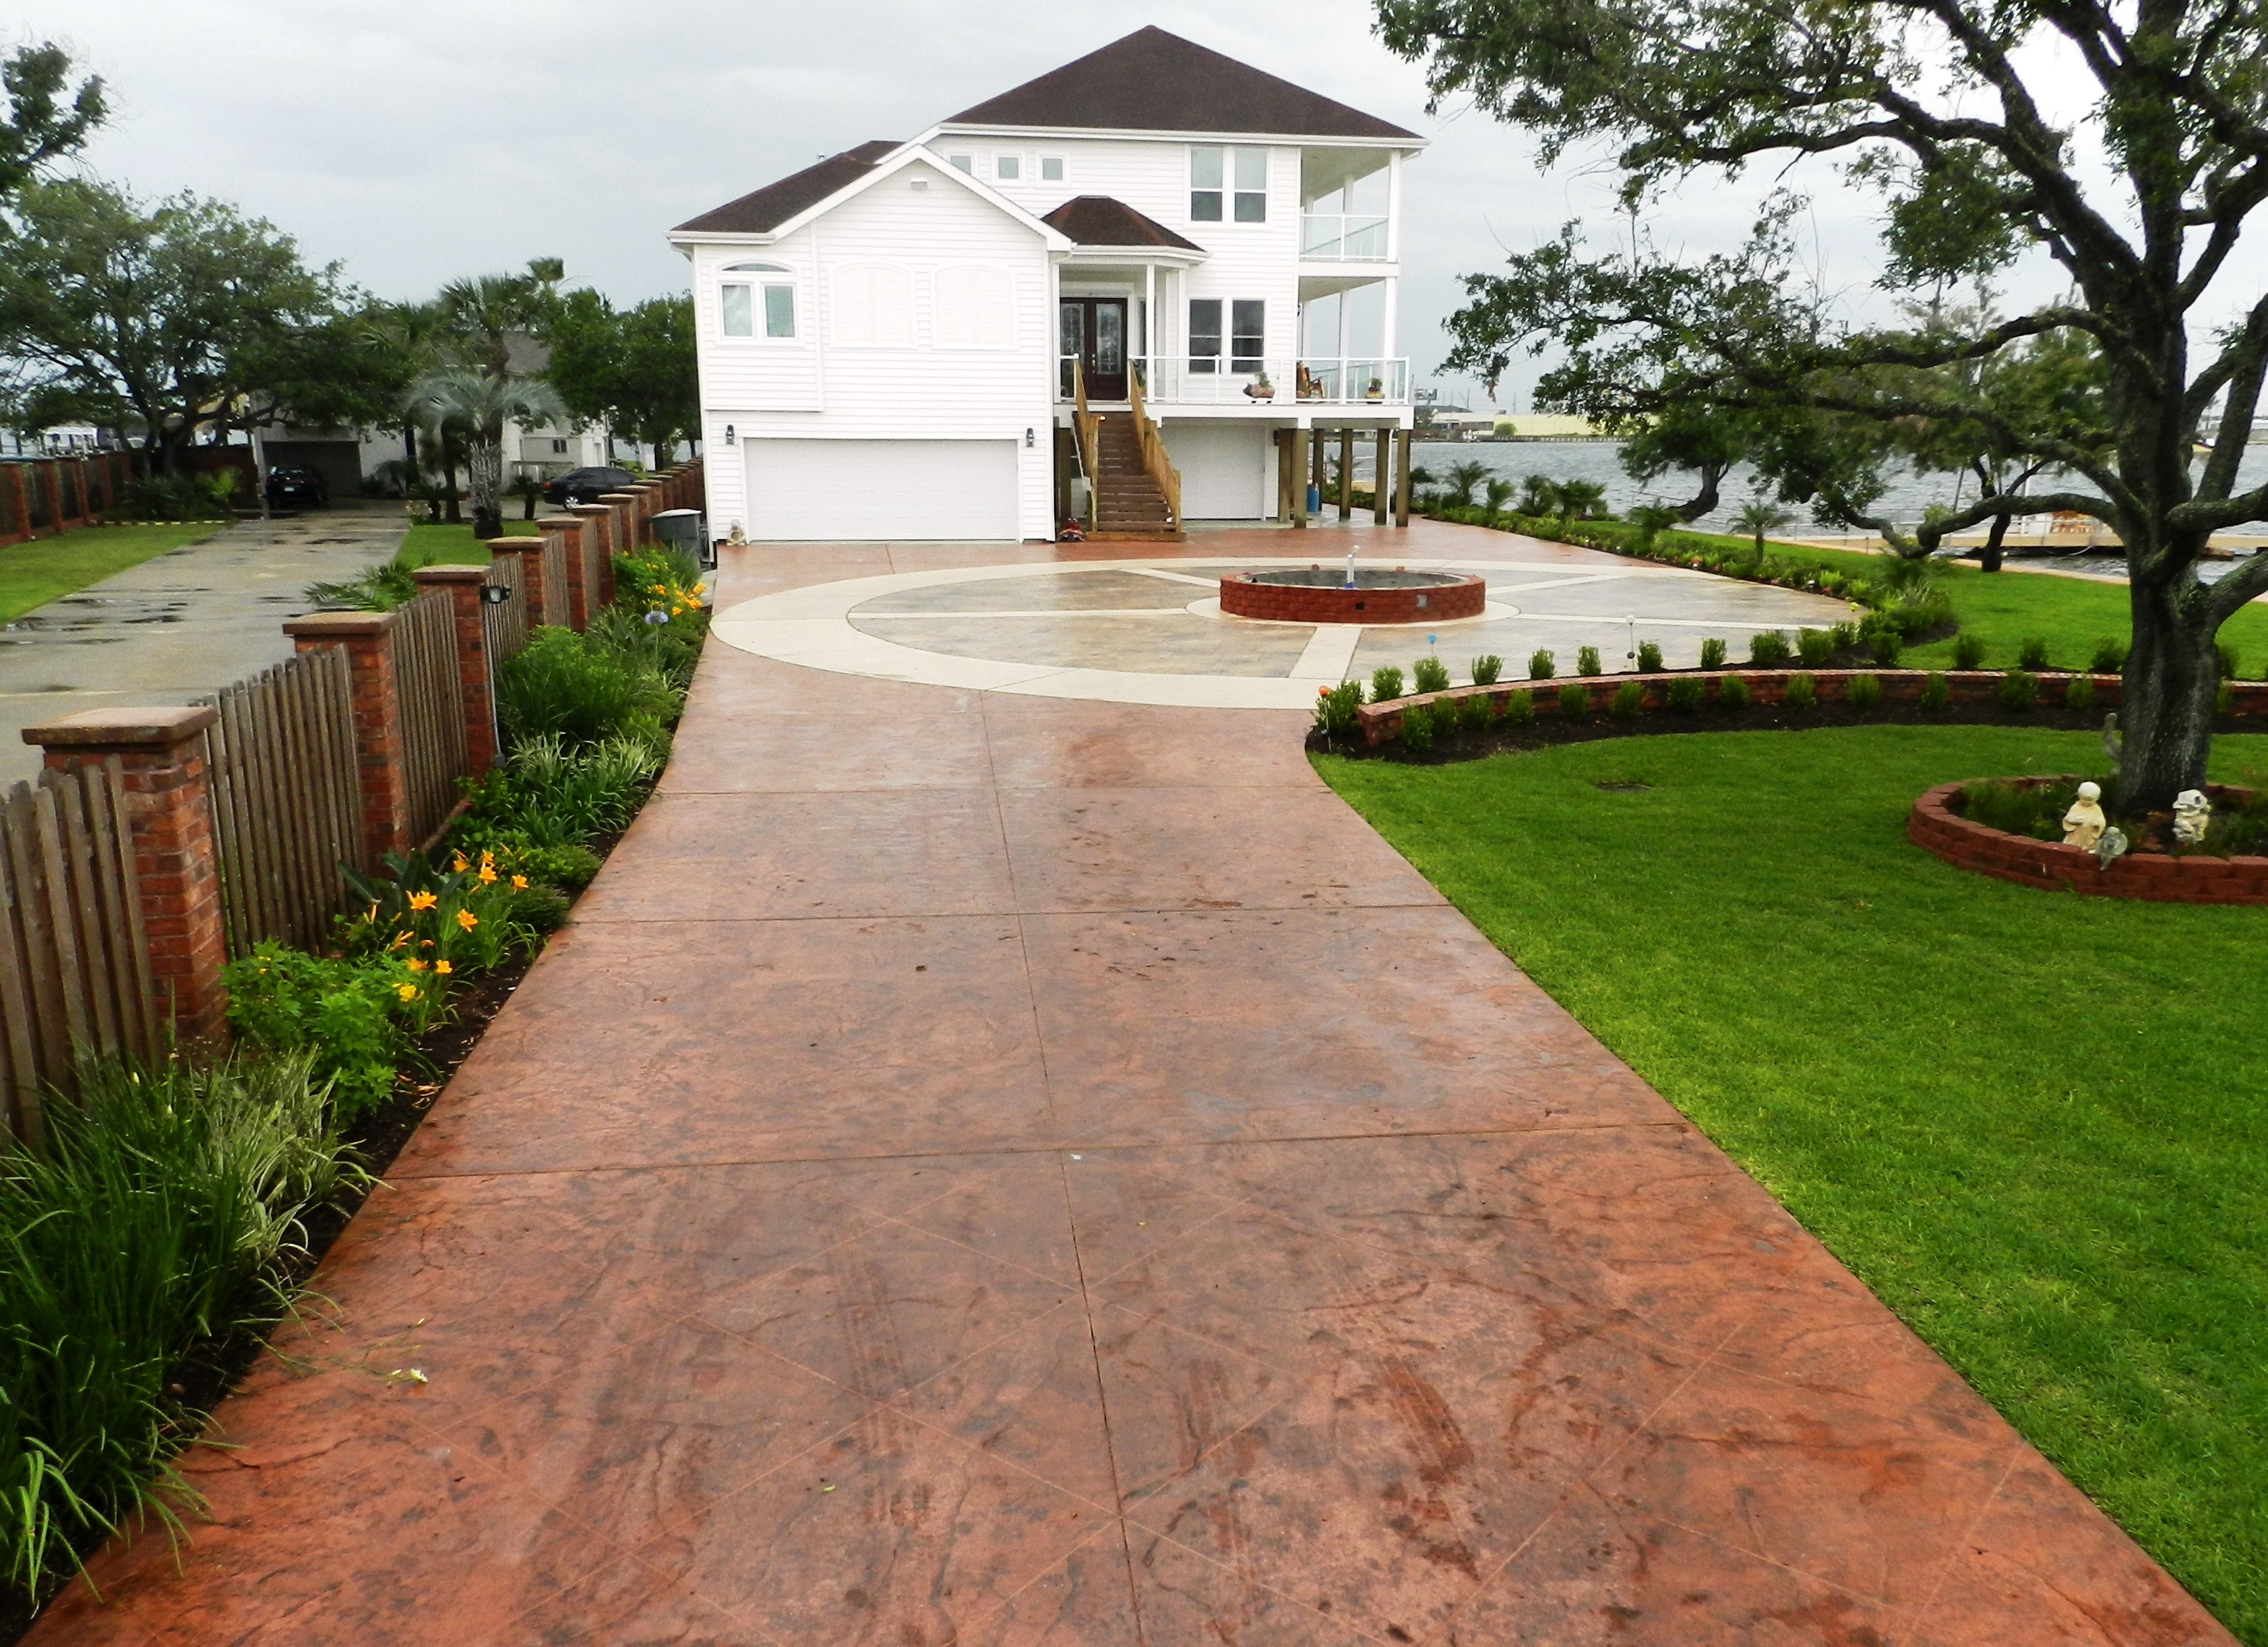 view in gallery stamped concrete designs ideas for stamped concrete driveway with cool front yard patio designs - Concrete Driveway Design Ideas